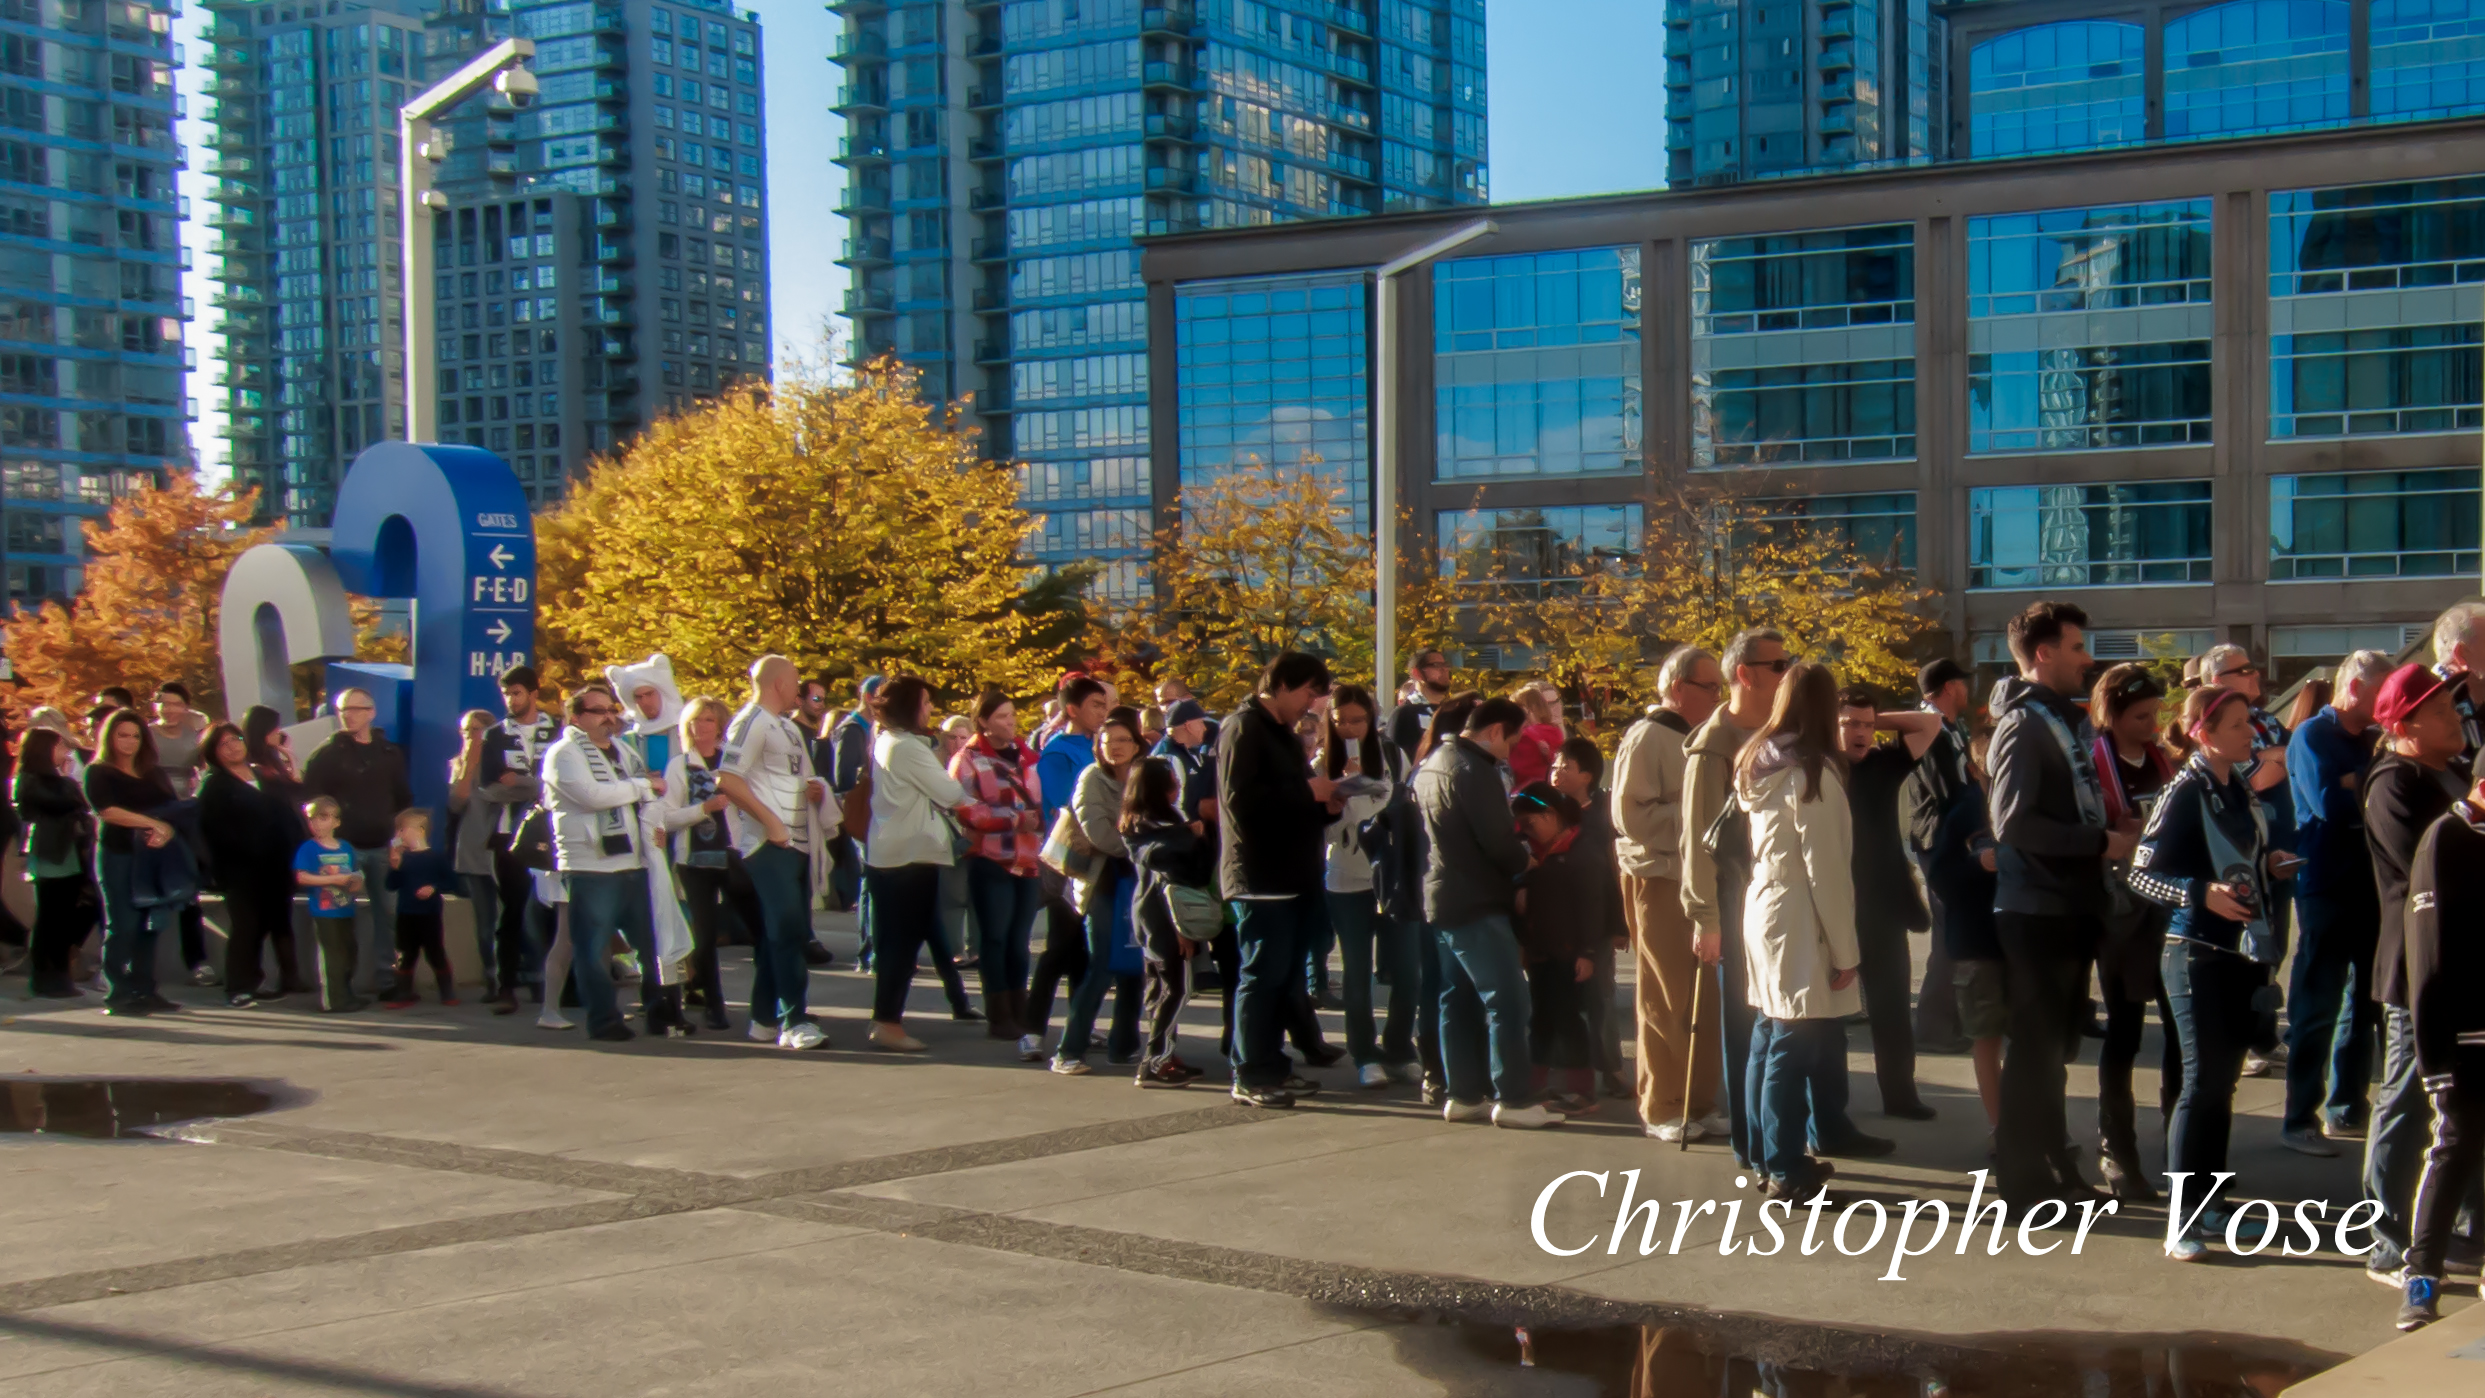 2013-10-27 Vancouver Whitecaps FC Supporters.jpg